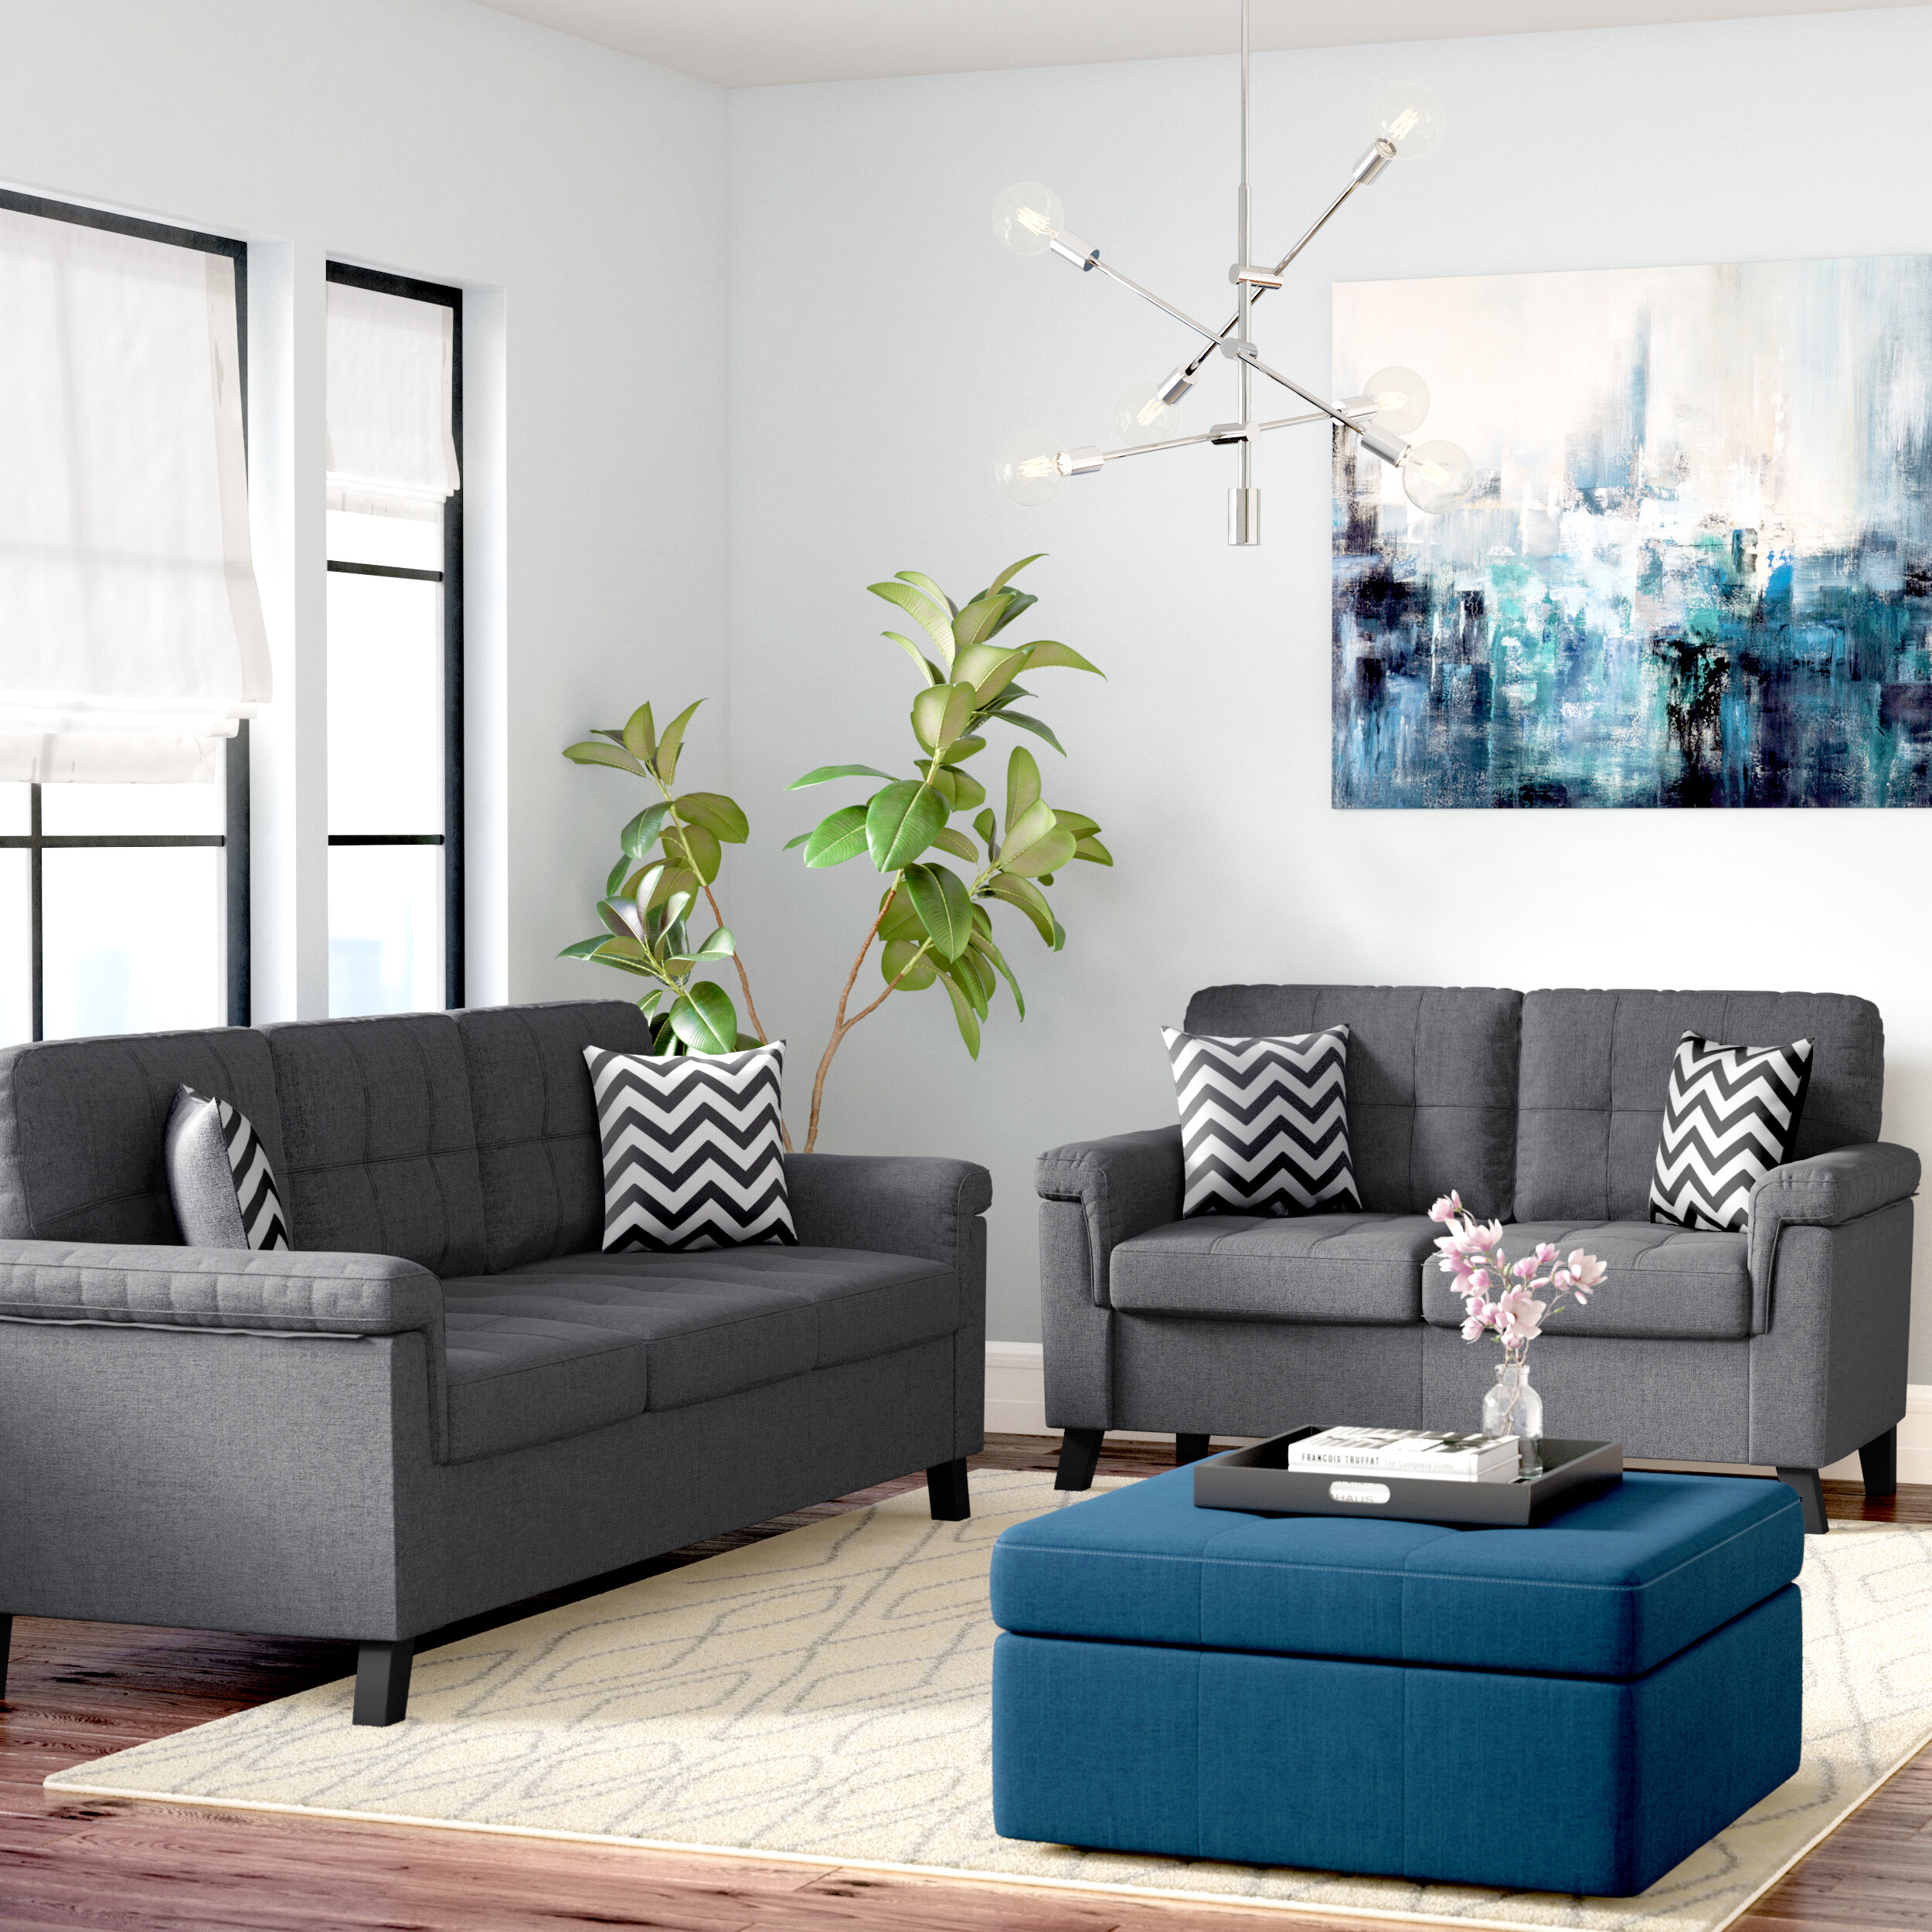 tufted sets loveseat and p tanya sofa living livings piece set modern room grey